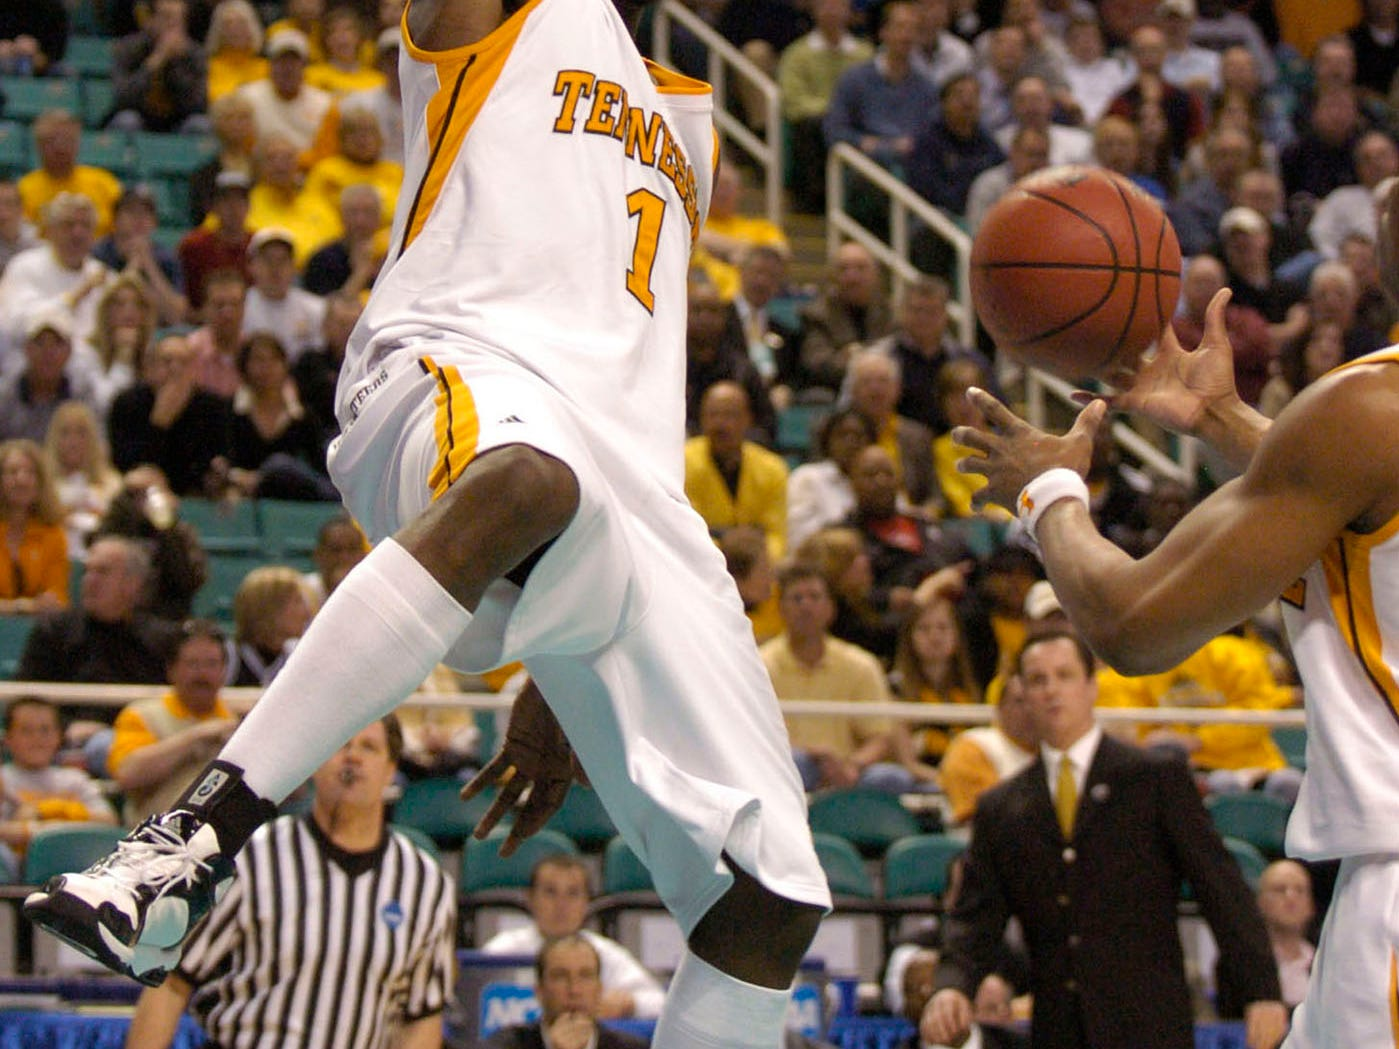 UT's Major Wingate hangs on the rim after a dunk against Winthrop during a first round NCAA tournament game Thursday at the Greensboro Coliseum in Greensboro, N.C. The Vols won the game 63-61. Wingate was the leading scorer for the Volunteers with 15 points.2006